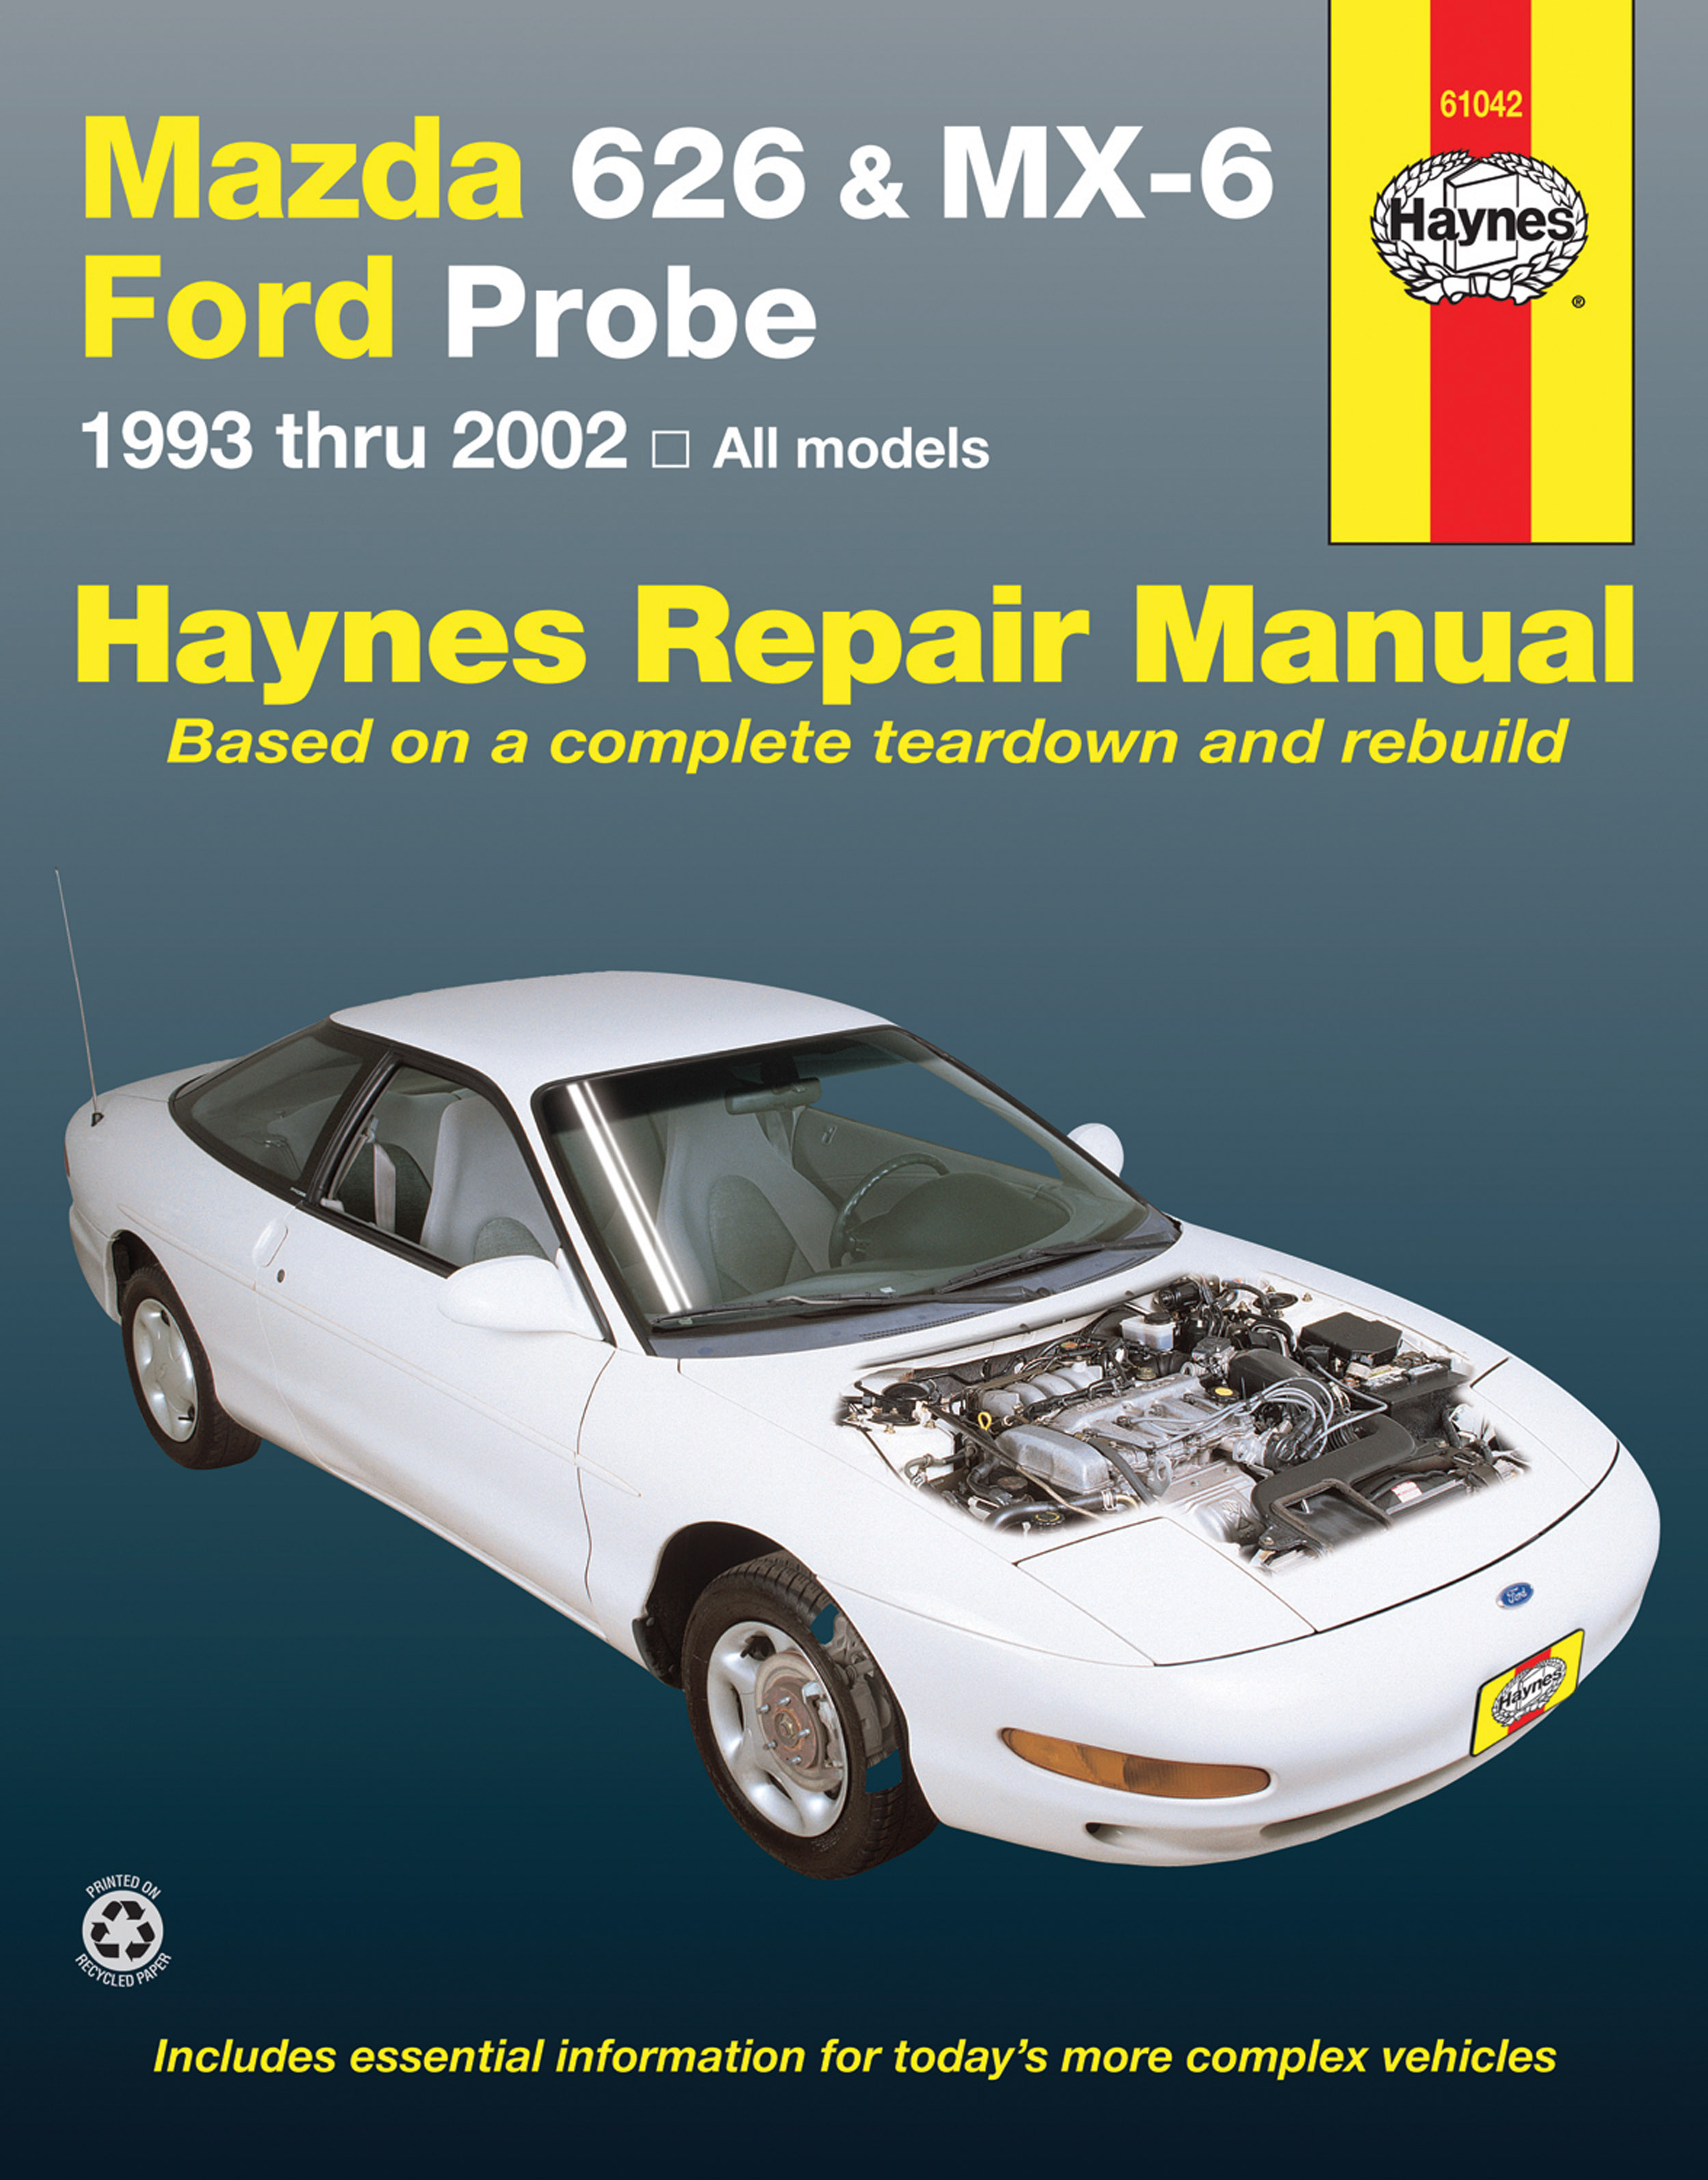 ... 2000 mazda 626 workshop manual. mazda 626 mx 6 ford probe covering mazda  626 93 02 mazda mx 6 rh haynes